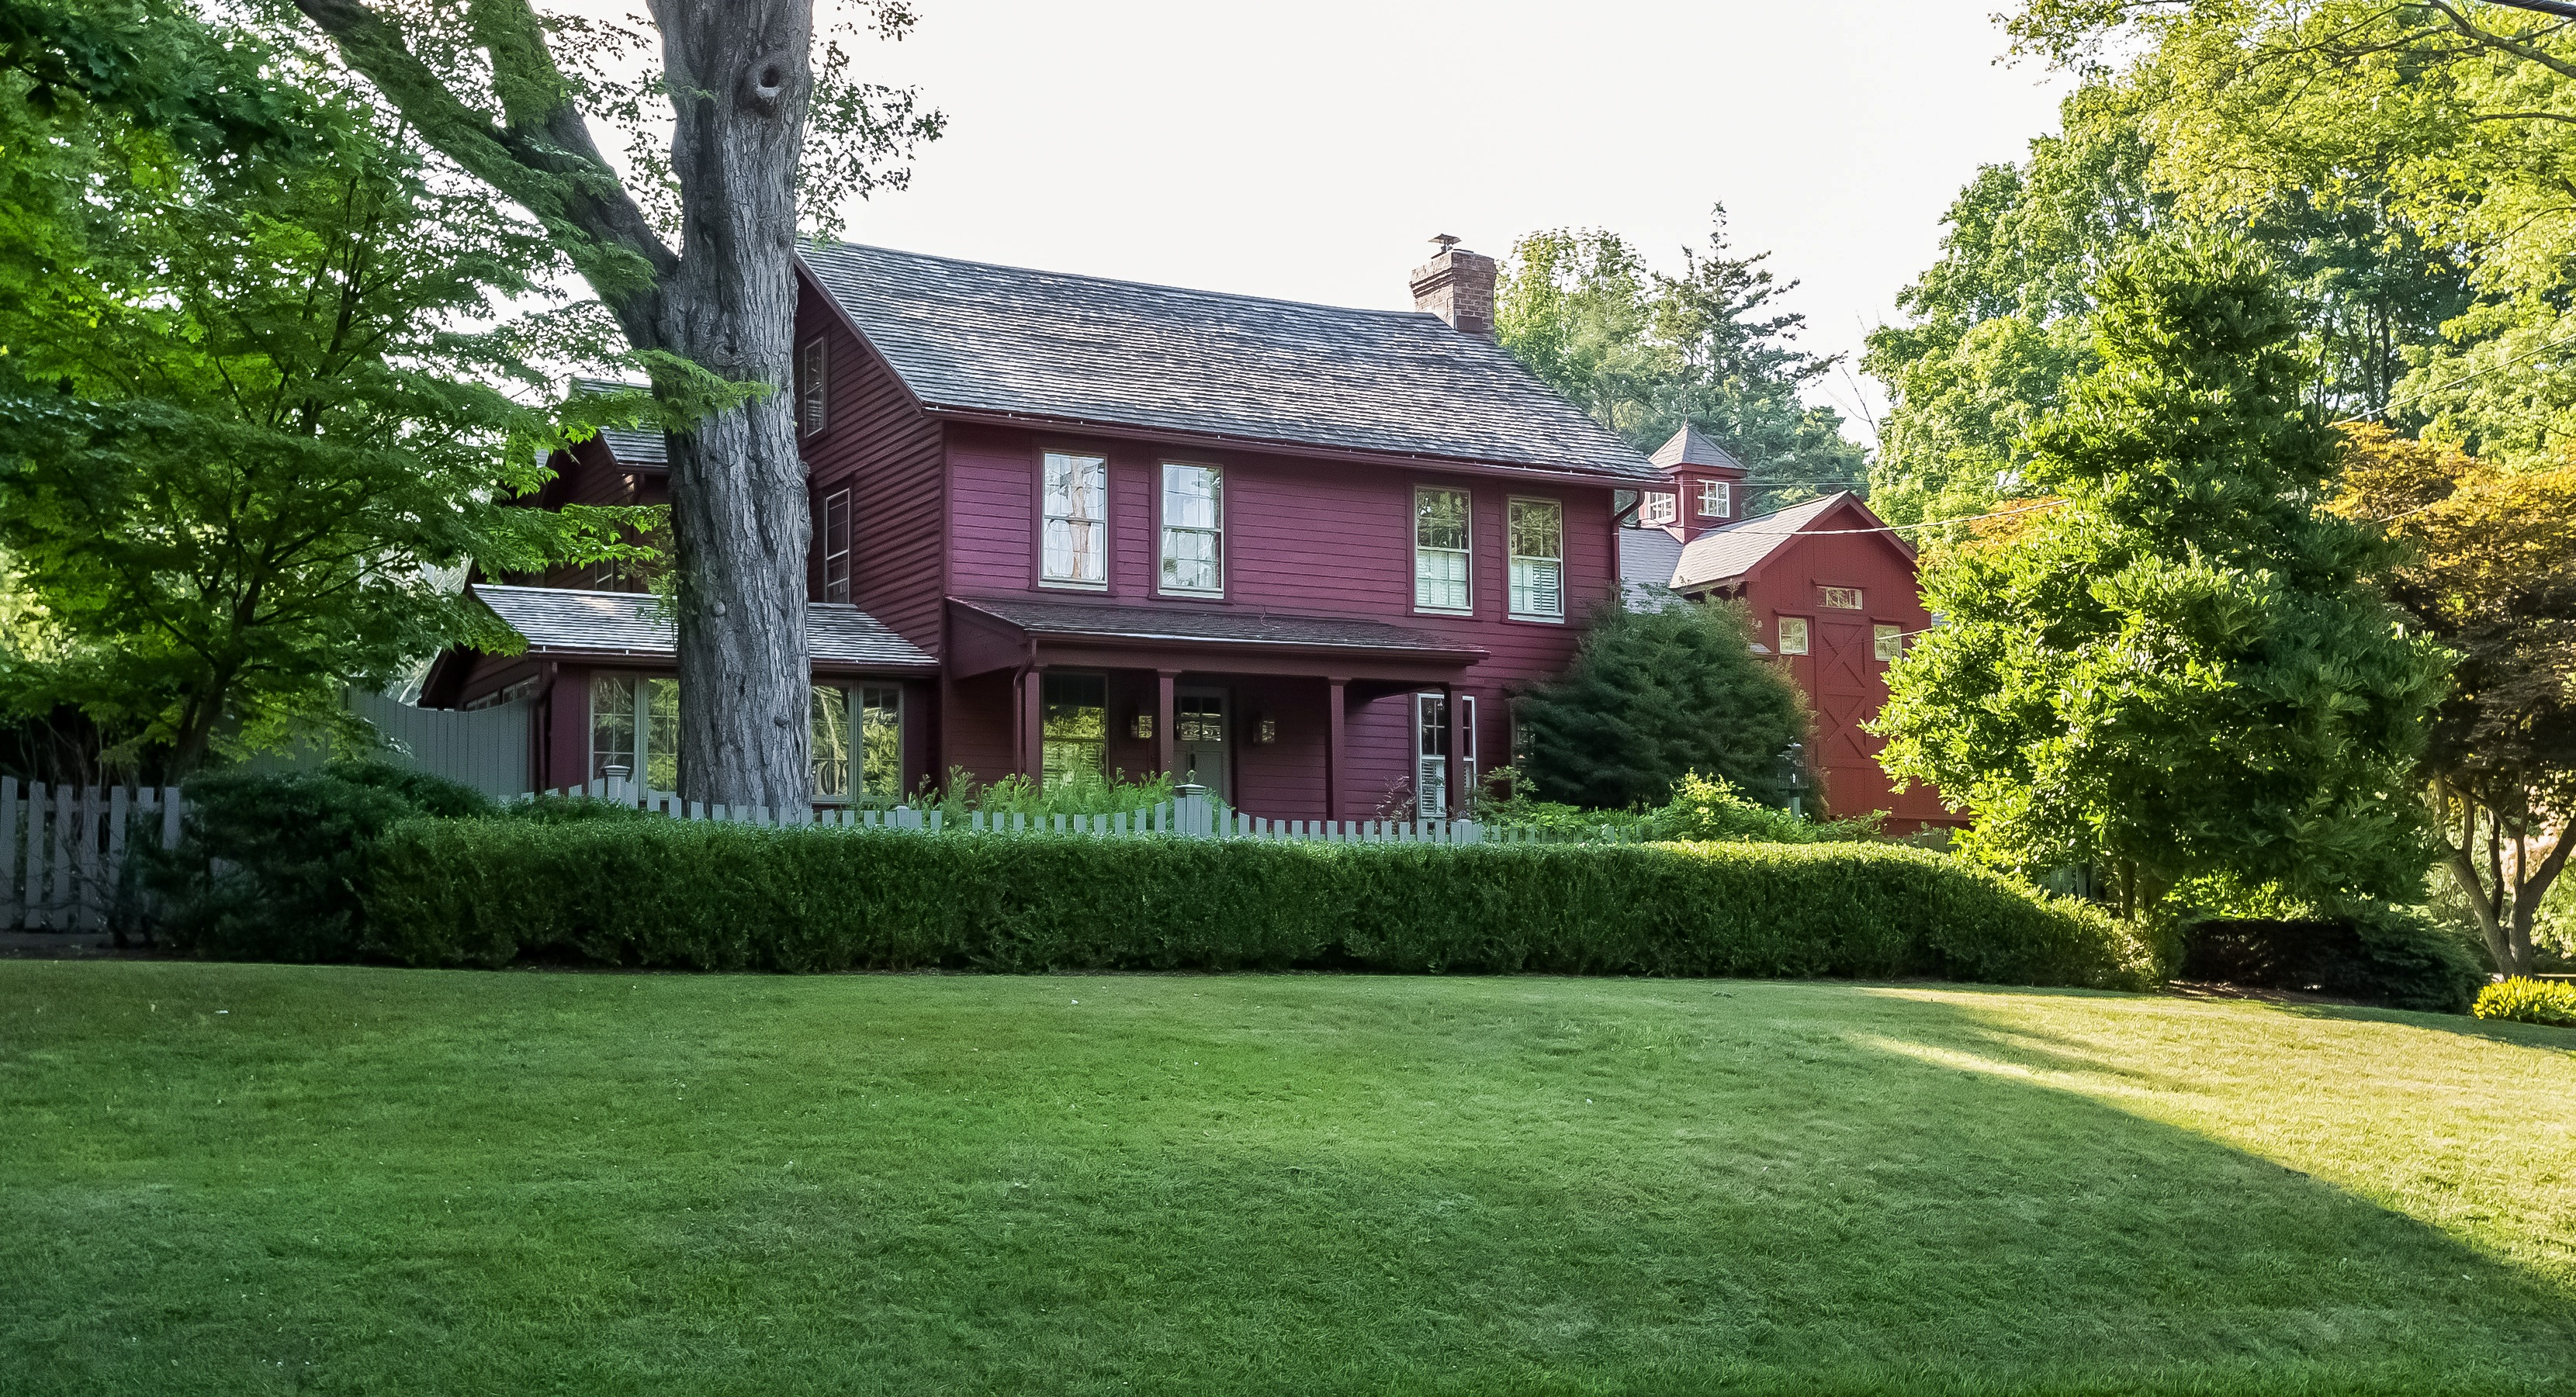 Casa Unifamiliar por un Venta en Beautiful Historic Home Close to Main Street 381 Wilton Road West Ridgefield, Connecticut, 06877 Estados Unidos